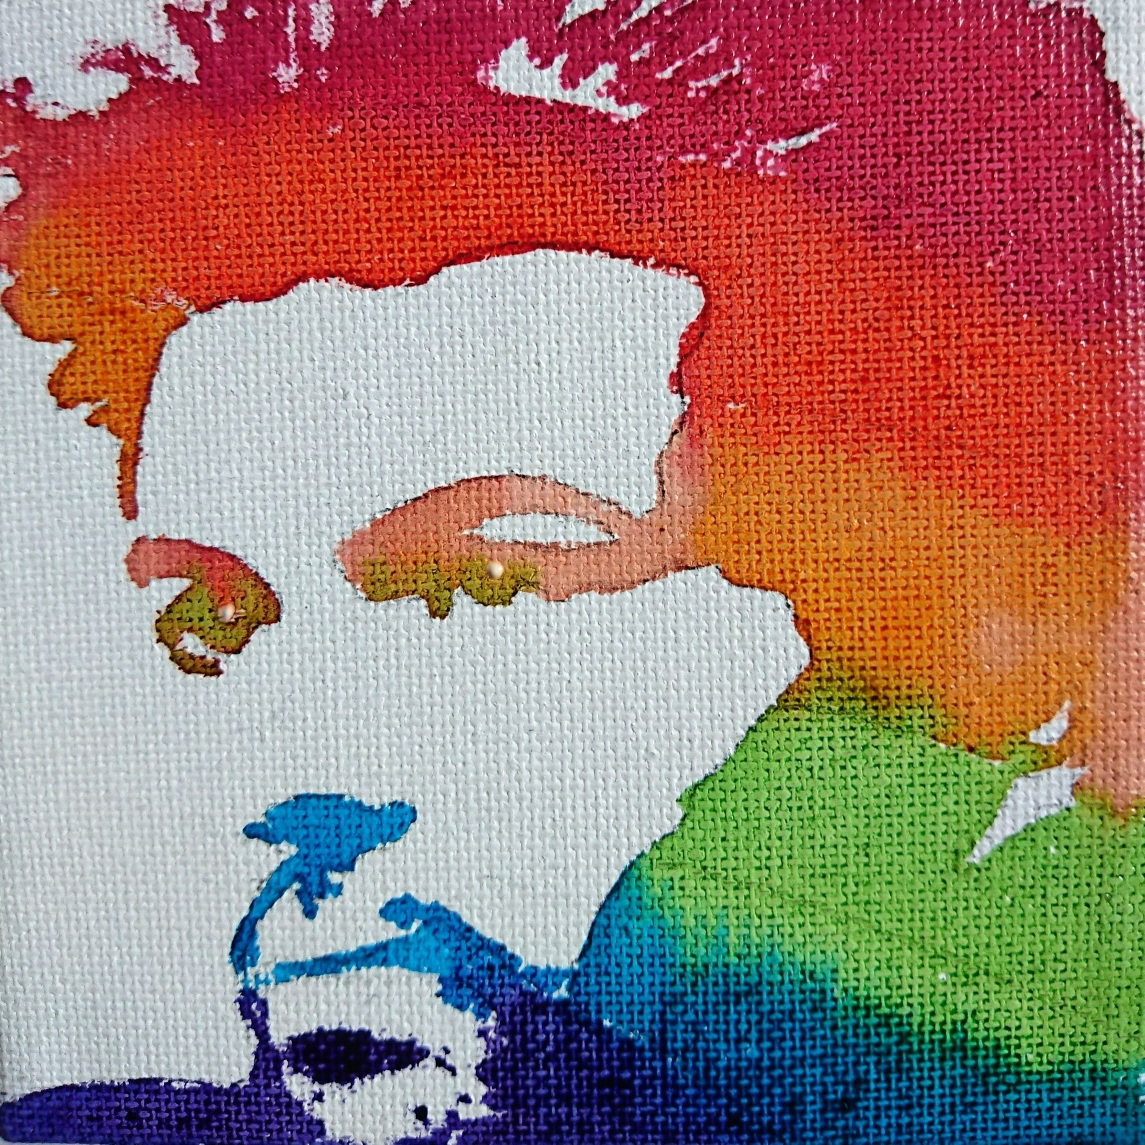 George Michael, singer, made on coming out day/oct. 11